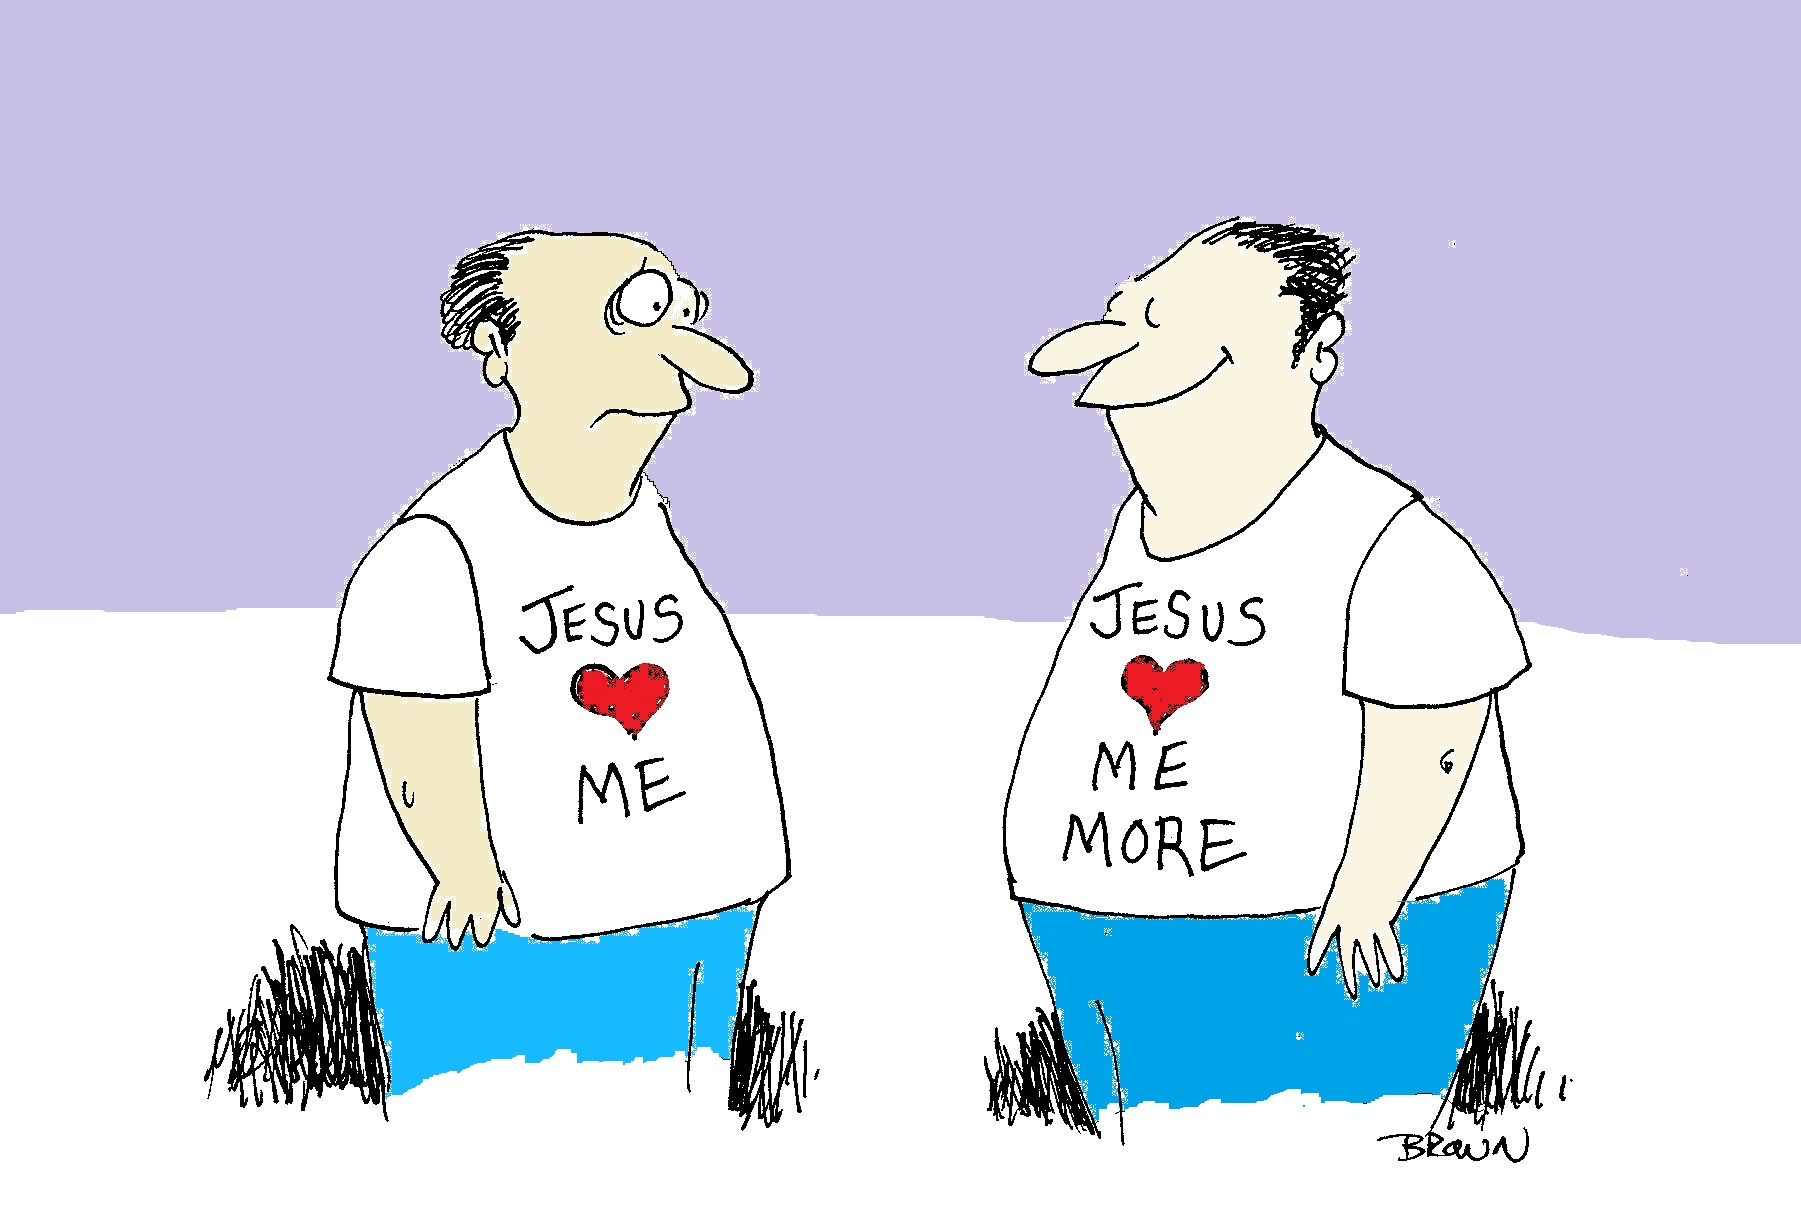 Jesus love shirt color.jpg